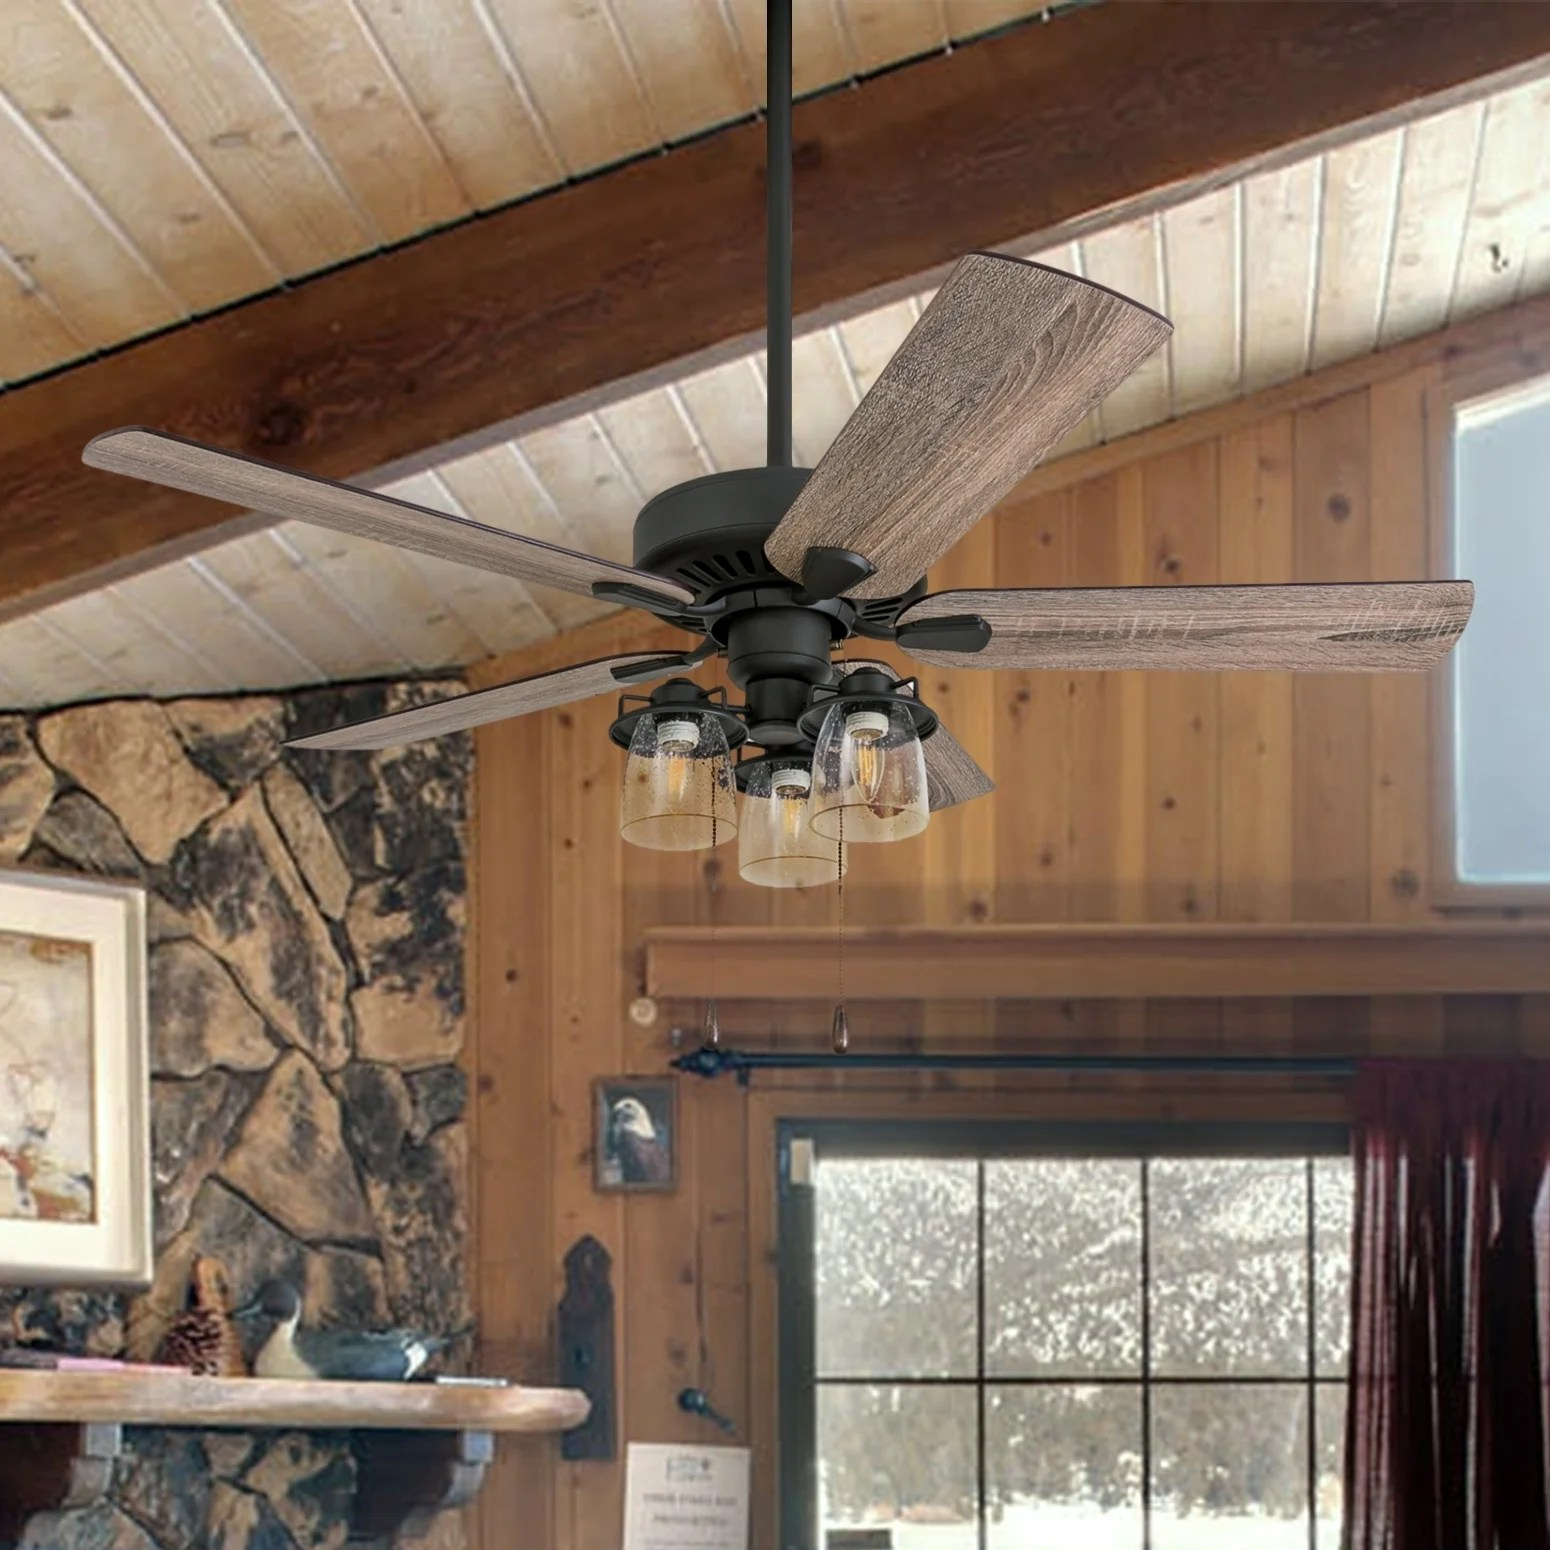 Small Ceiling Fans For Sale Ceiling Fans Find Great Ceiling Fans Accessories Deals